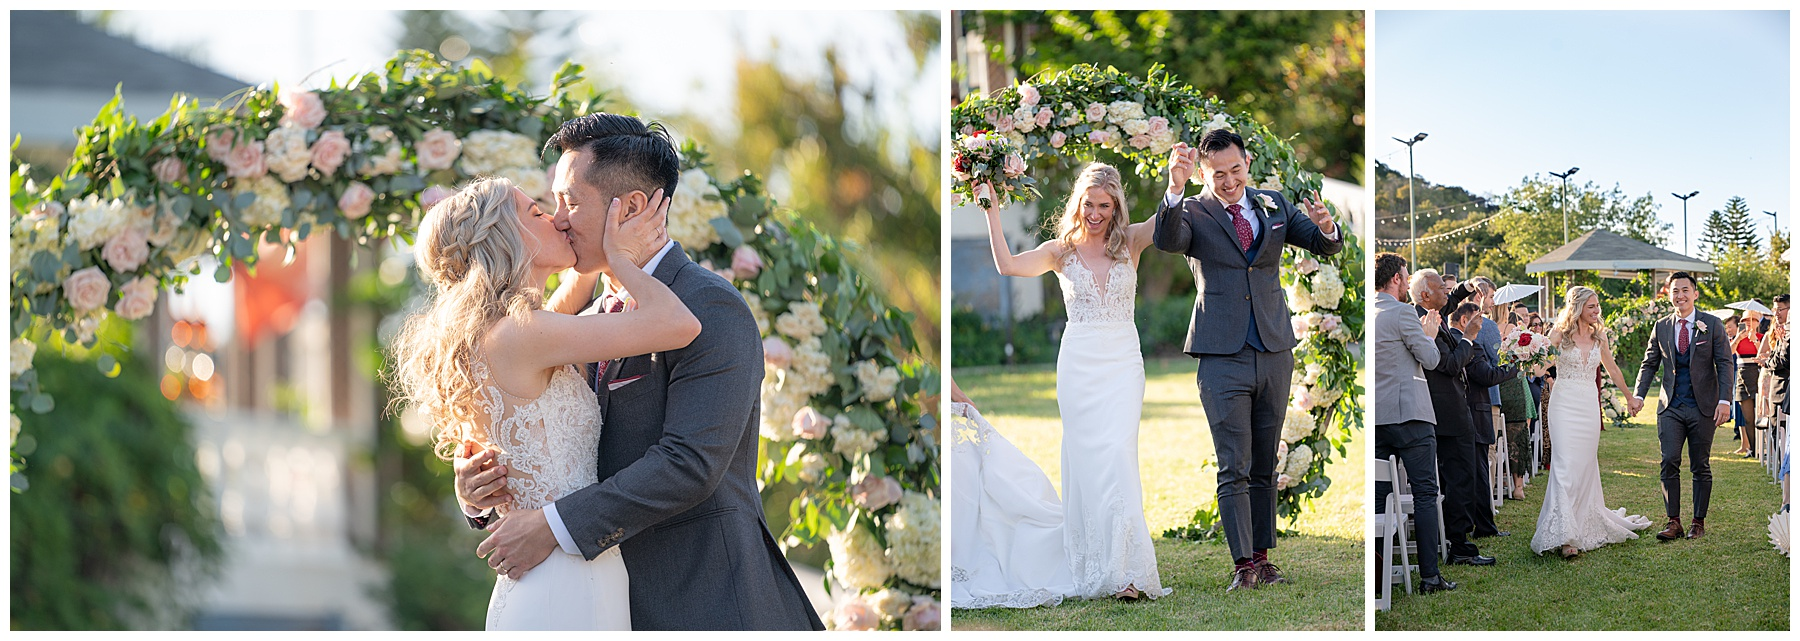 bride and groom kiss under arch